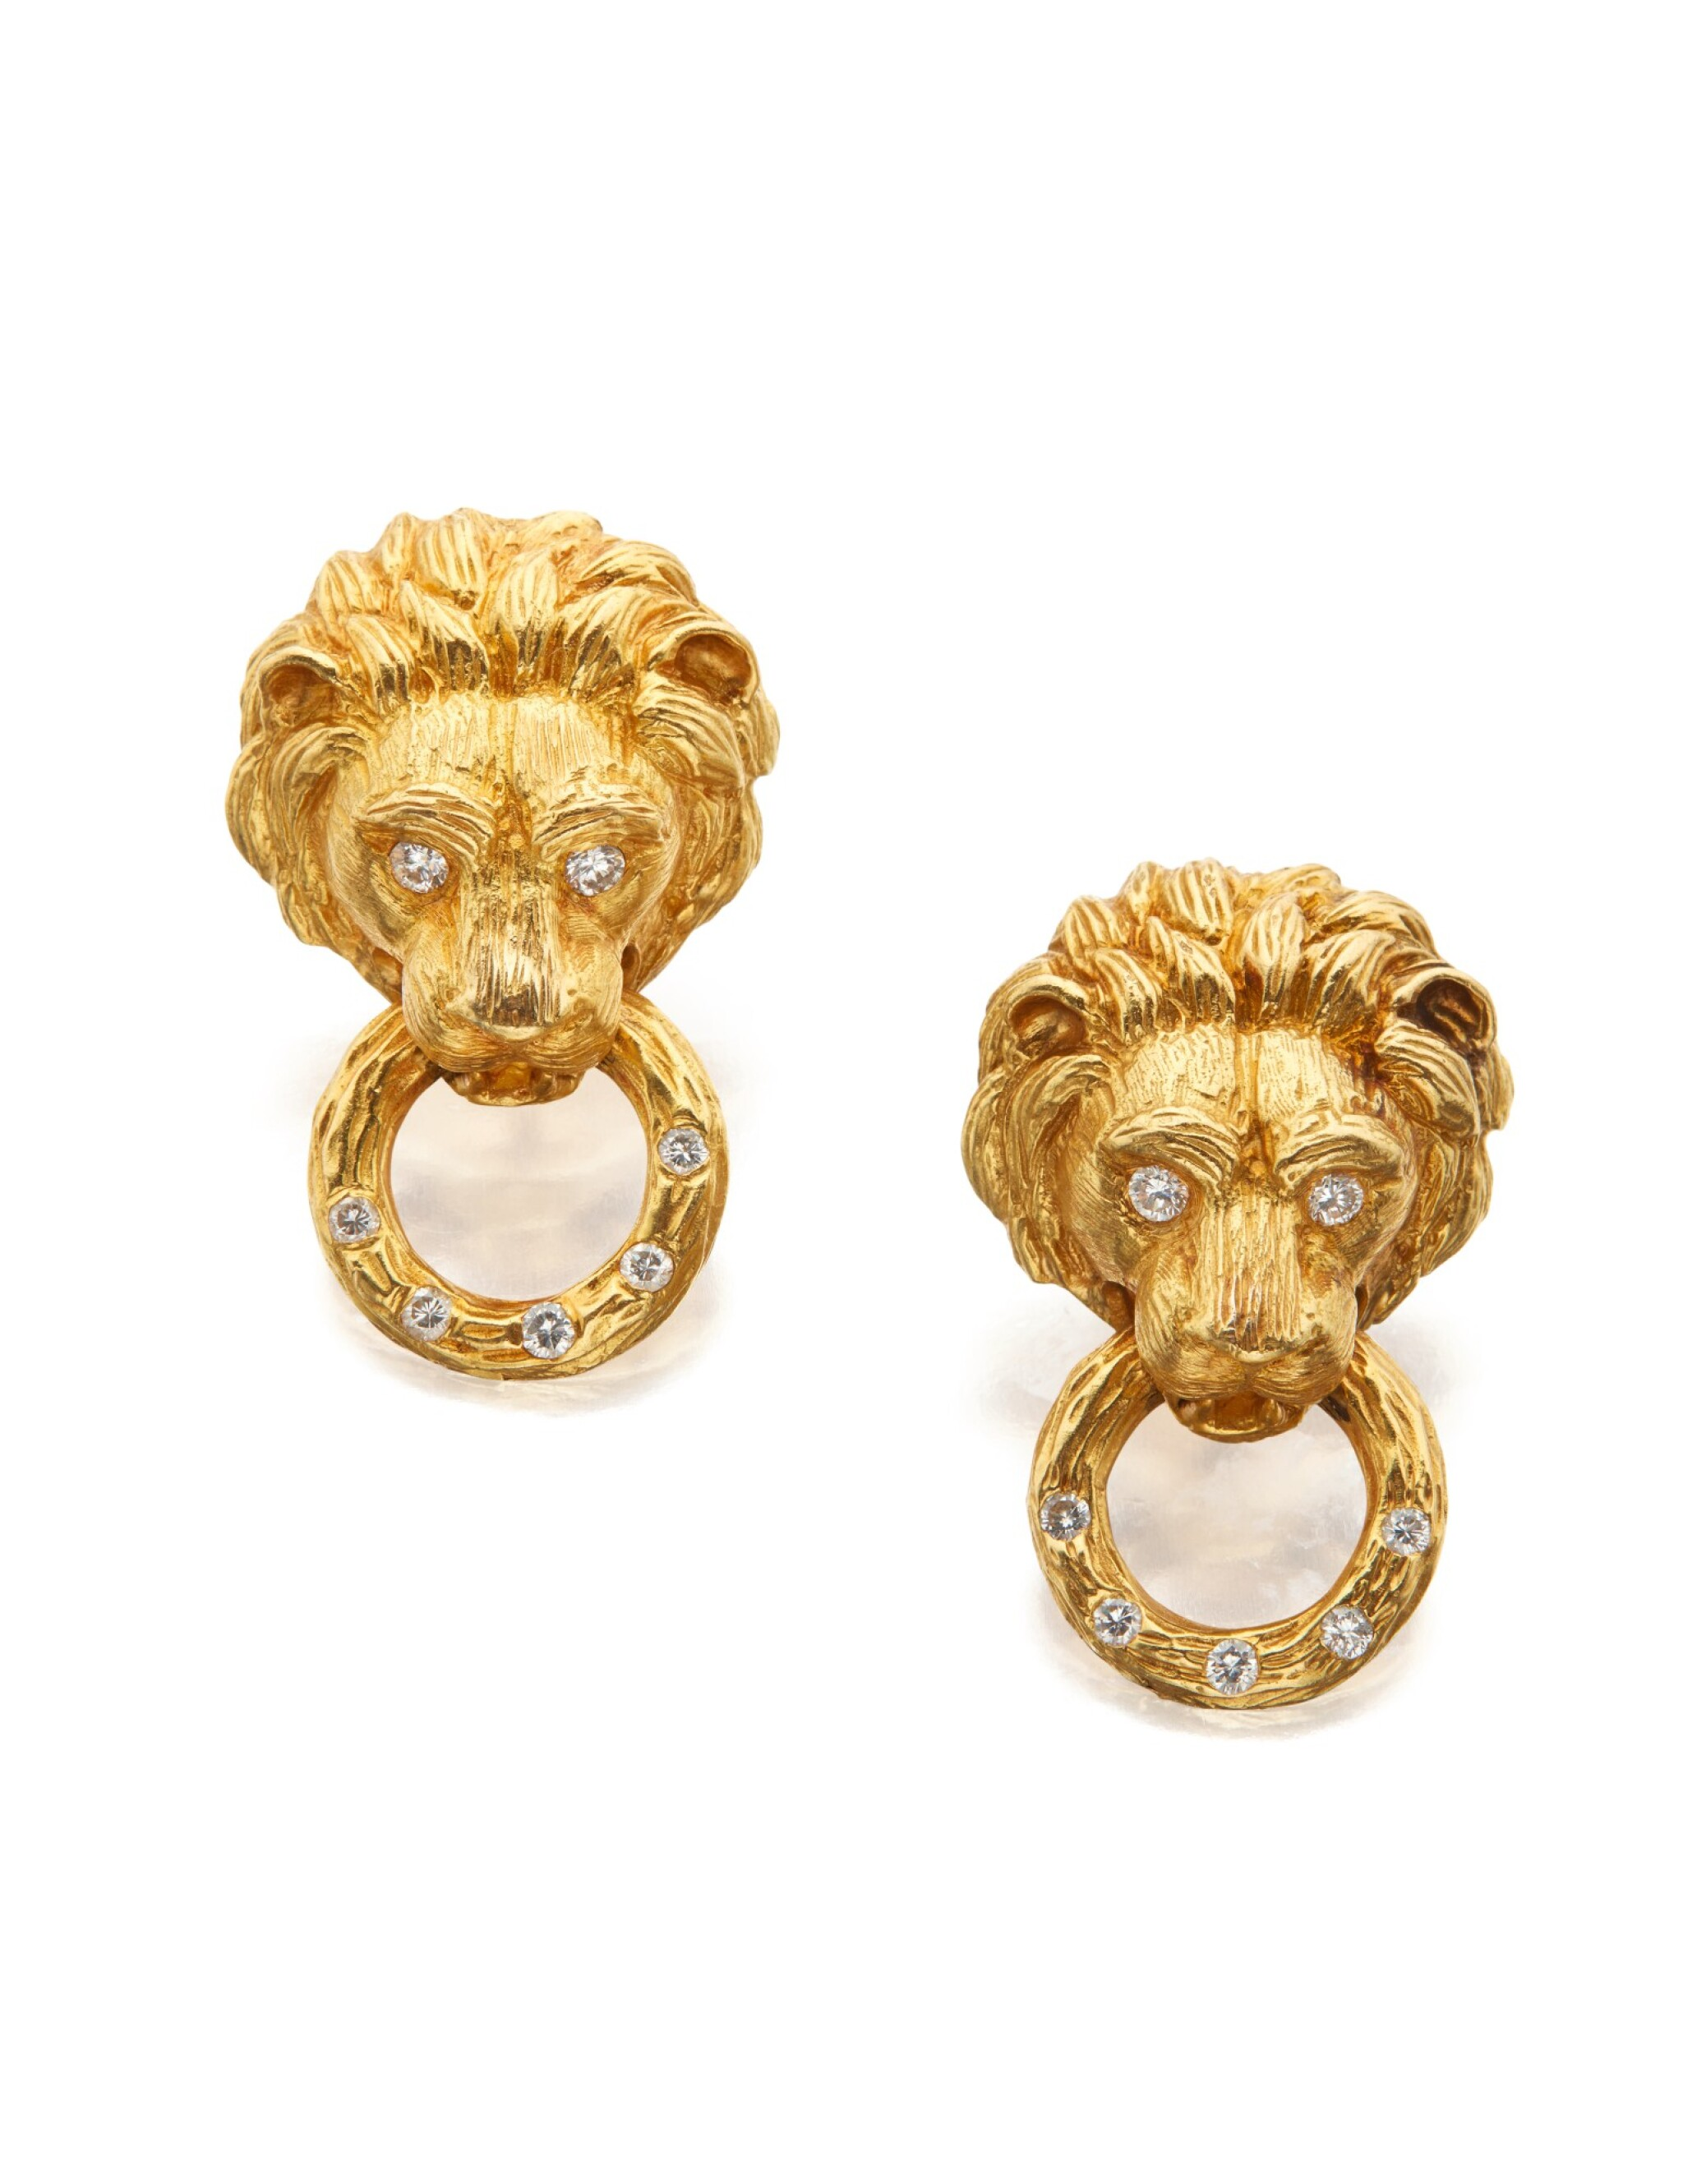 View full screen - View 1 of Lot 21. PAIR OF GOLD AND DIAMOND EARCLIPS, VAN CLEEF & ARPELS.